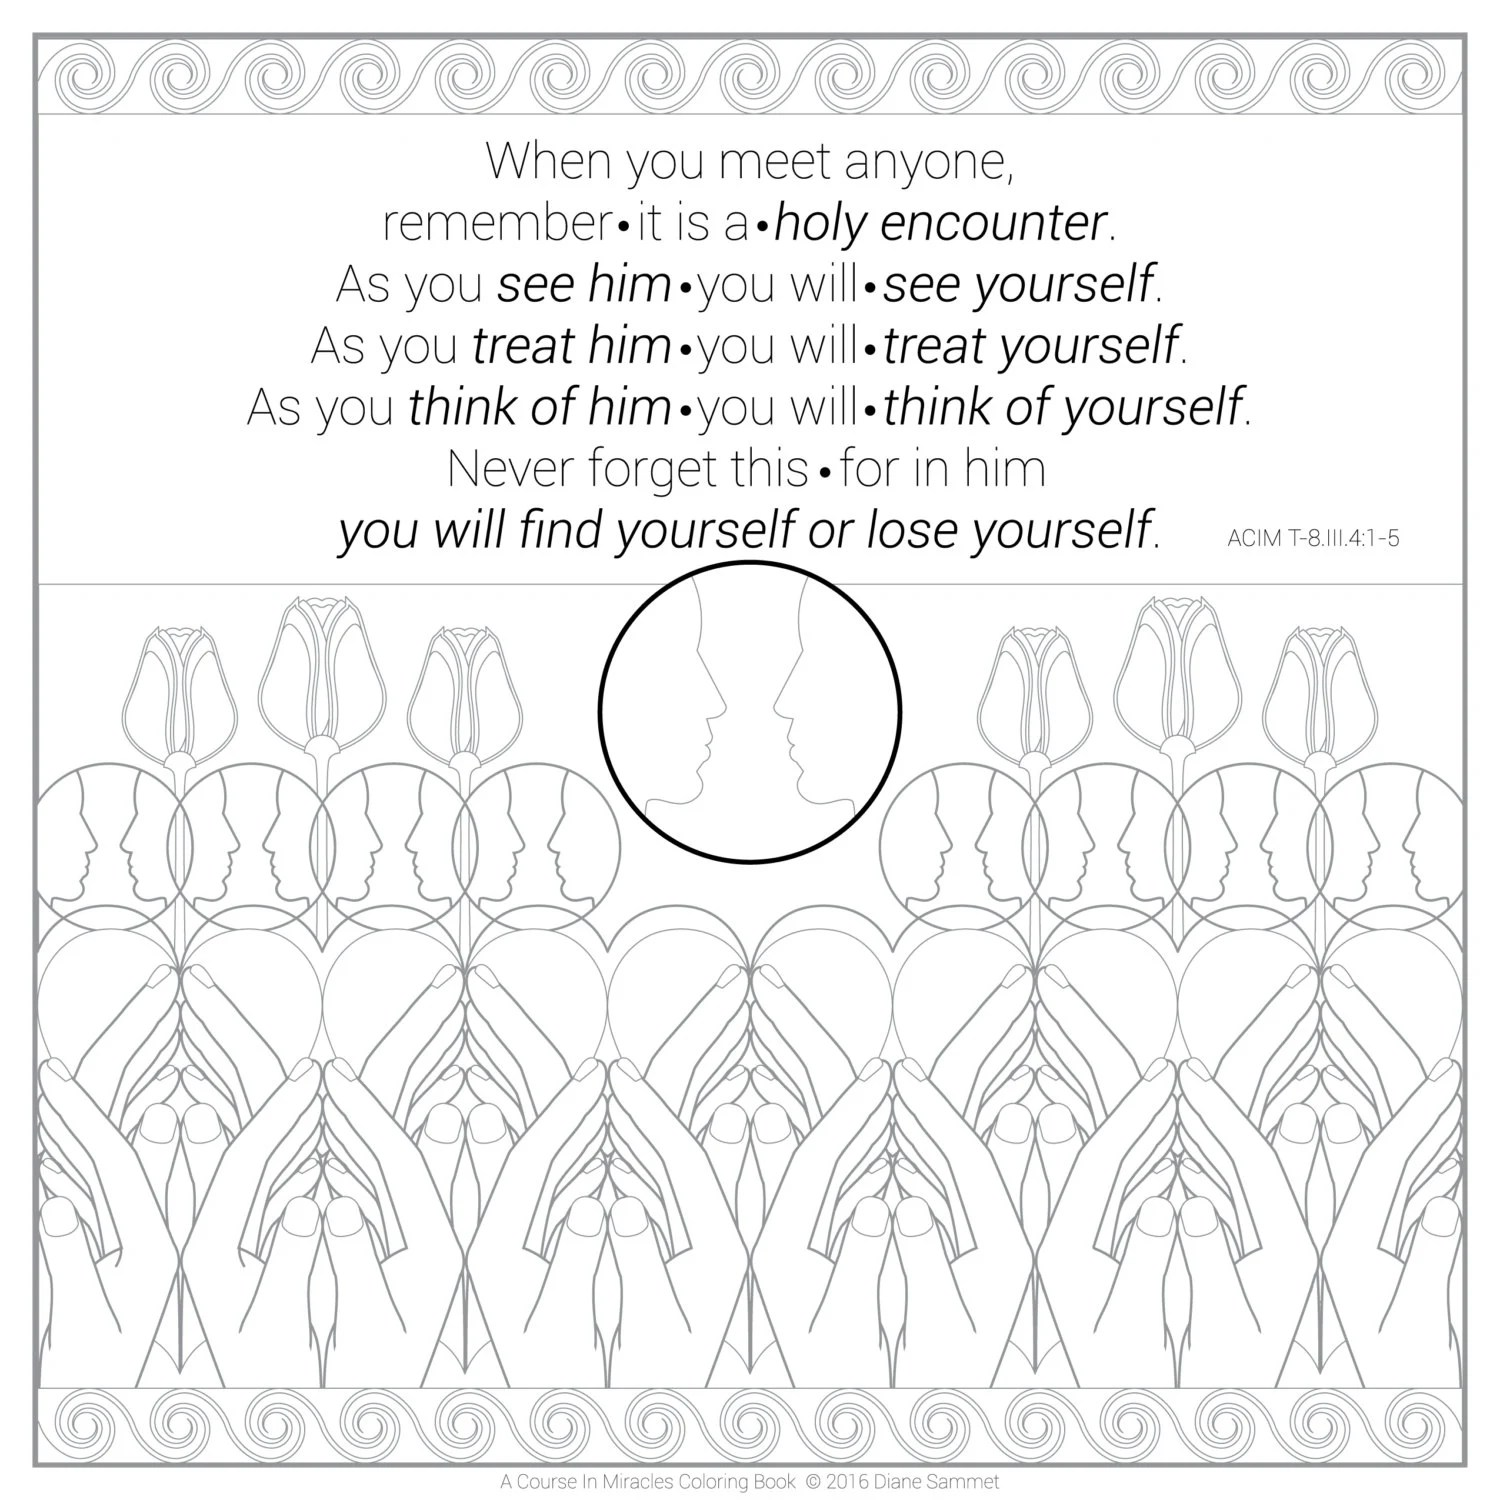 A Coloring Book Based On Course In Miracles